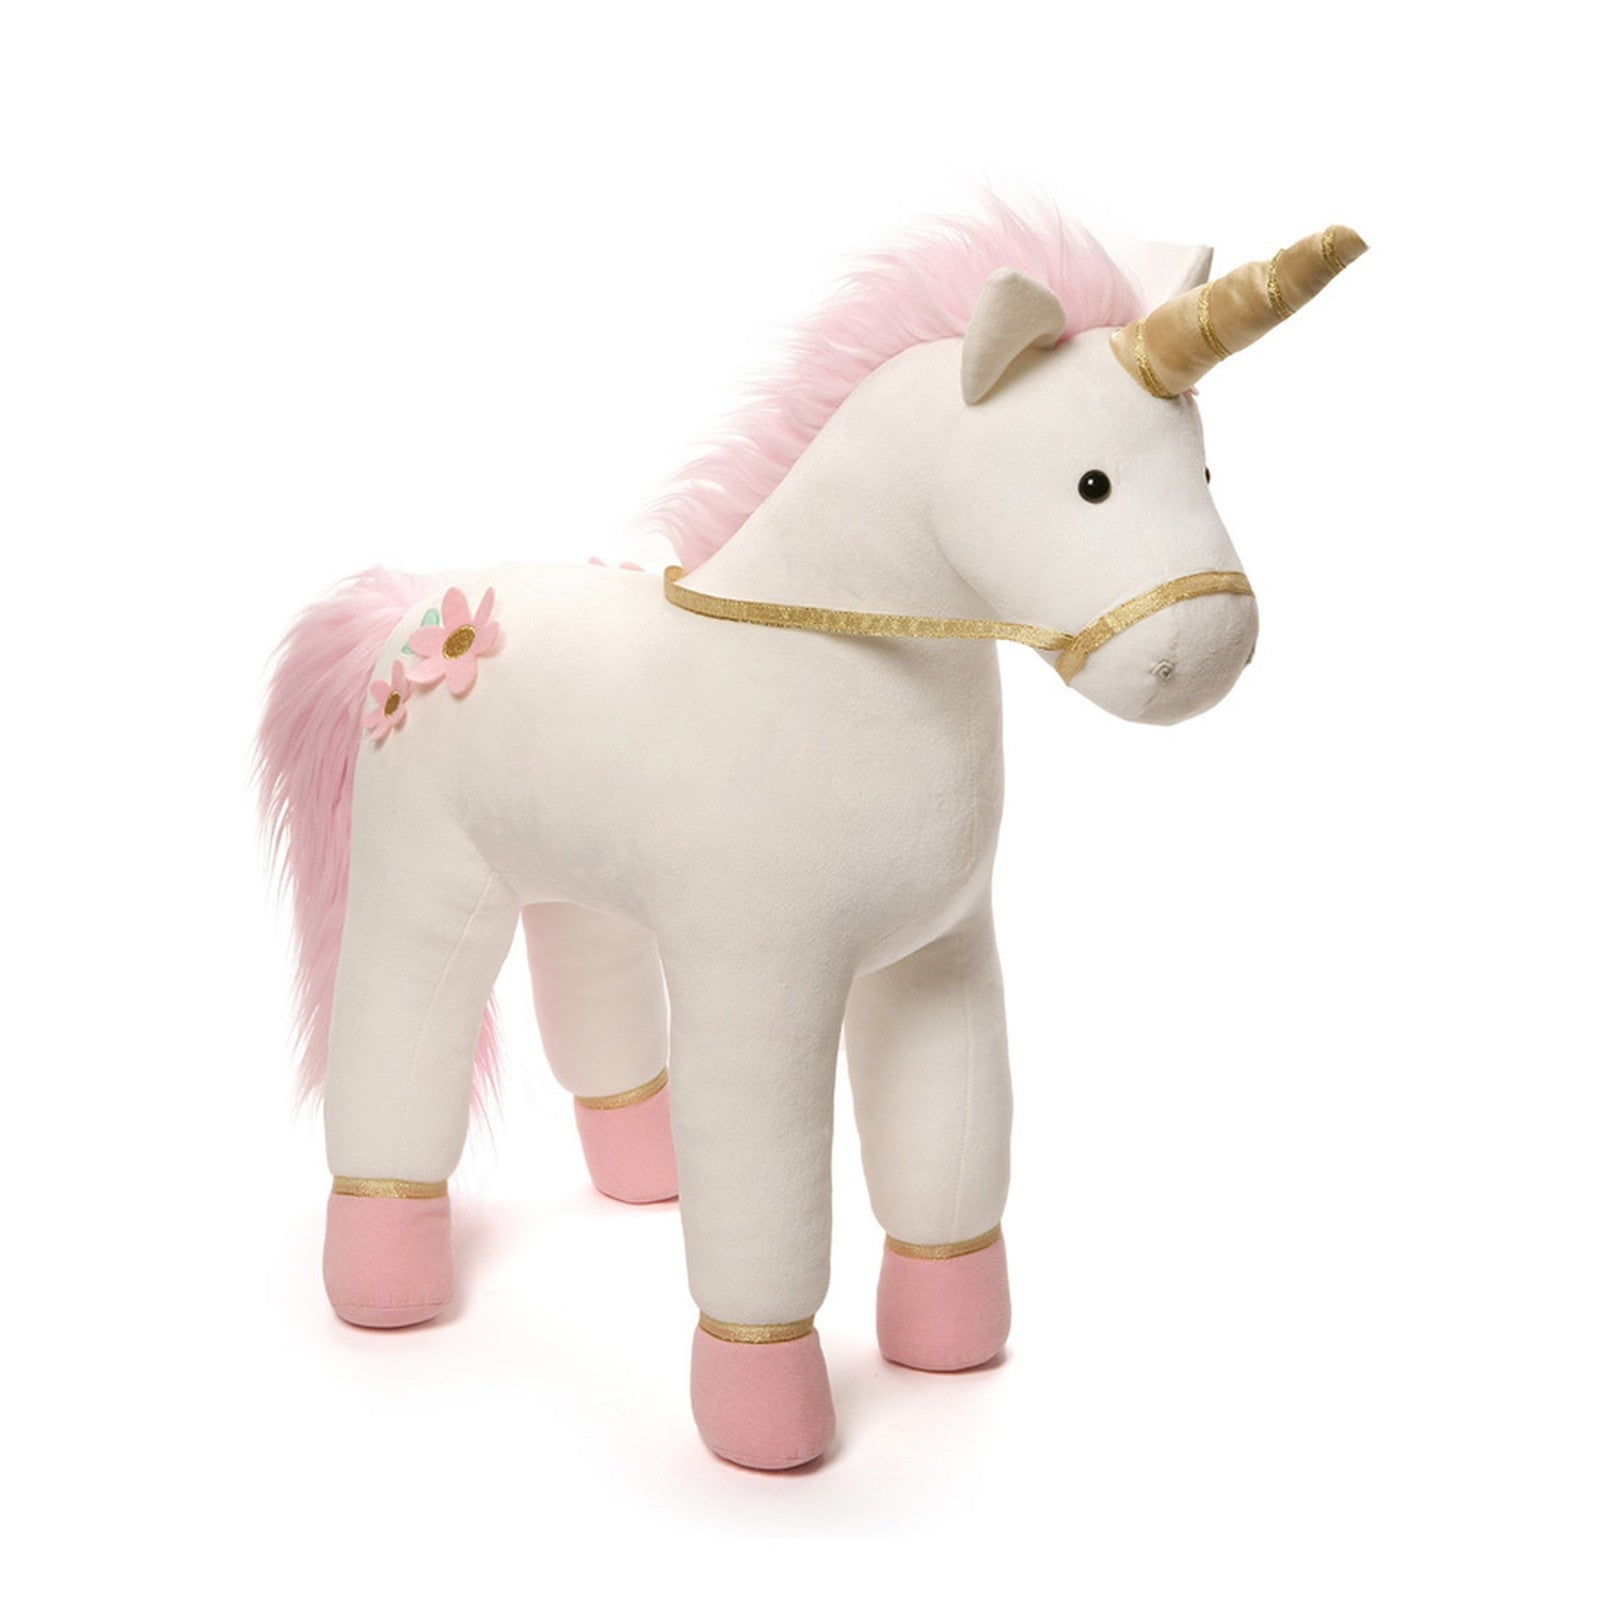 Gund - Lil Rose Unicorn in 2 sizes